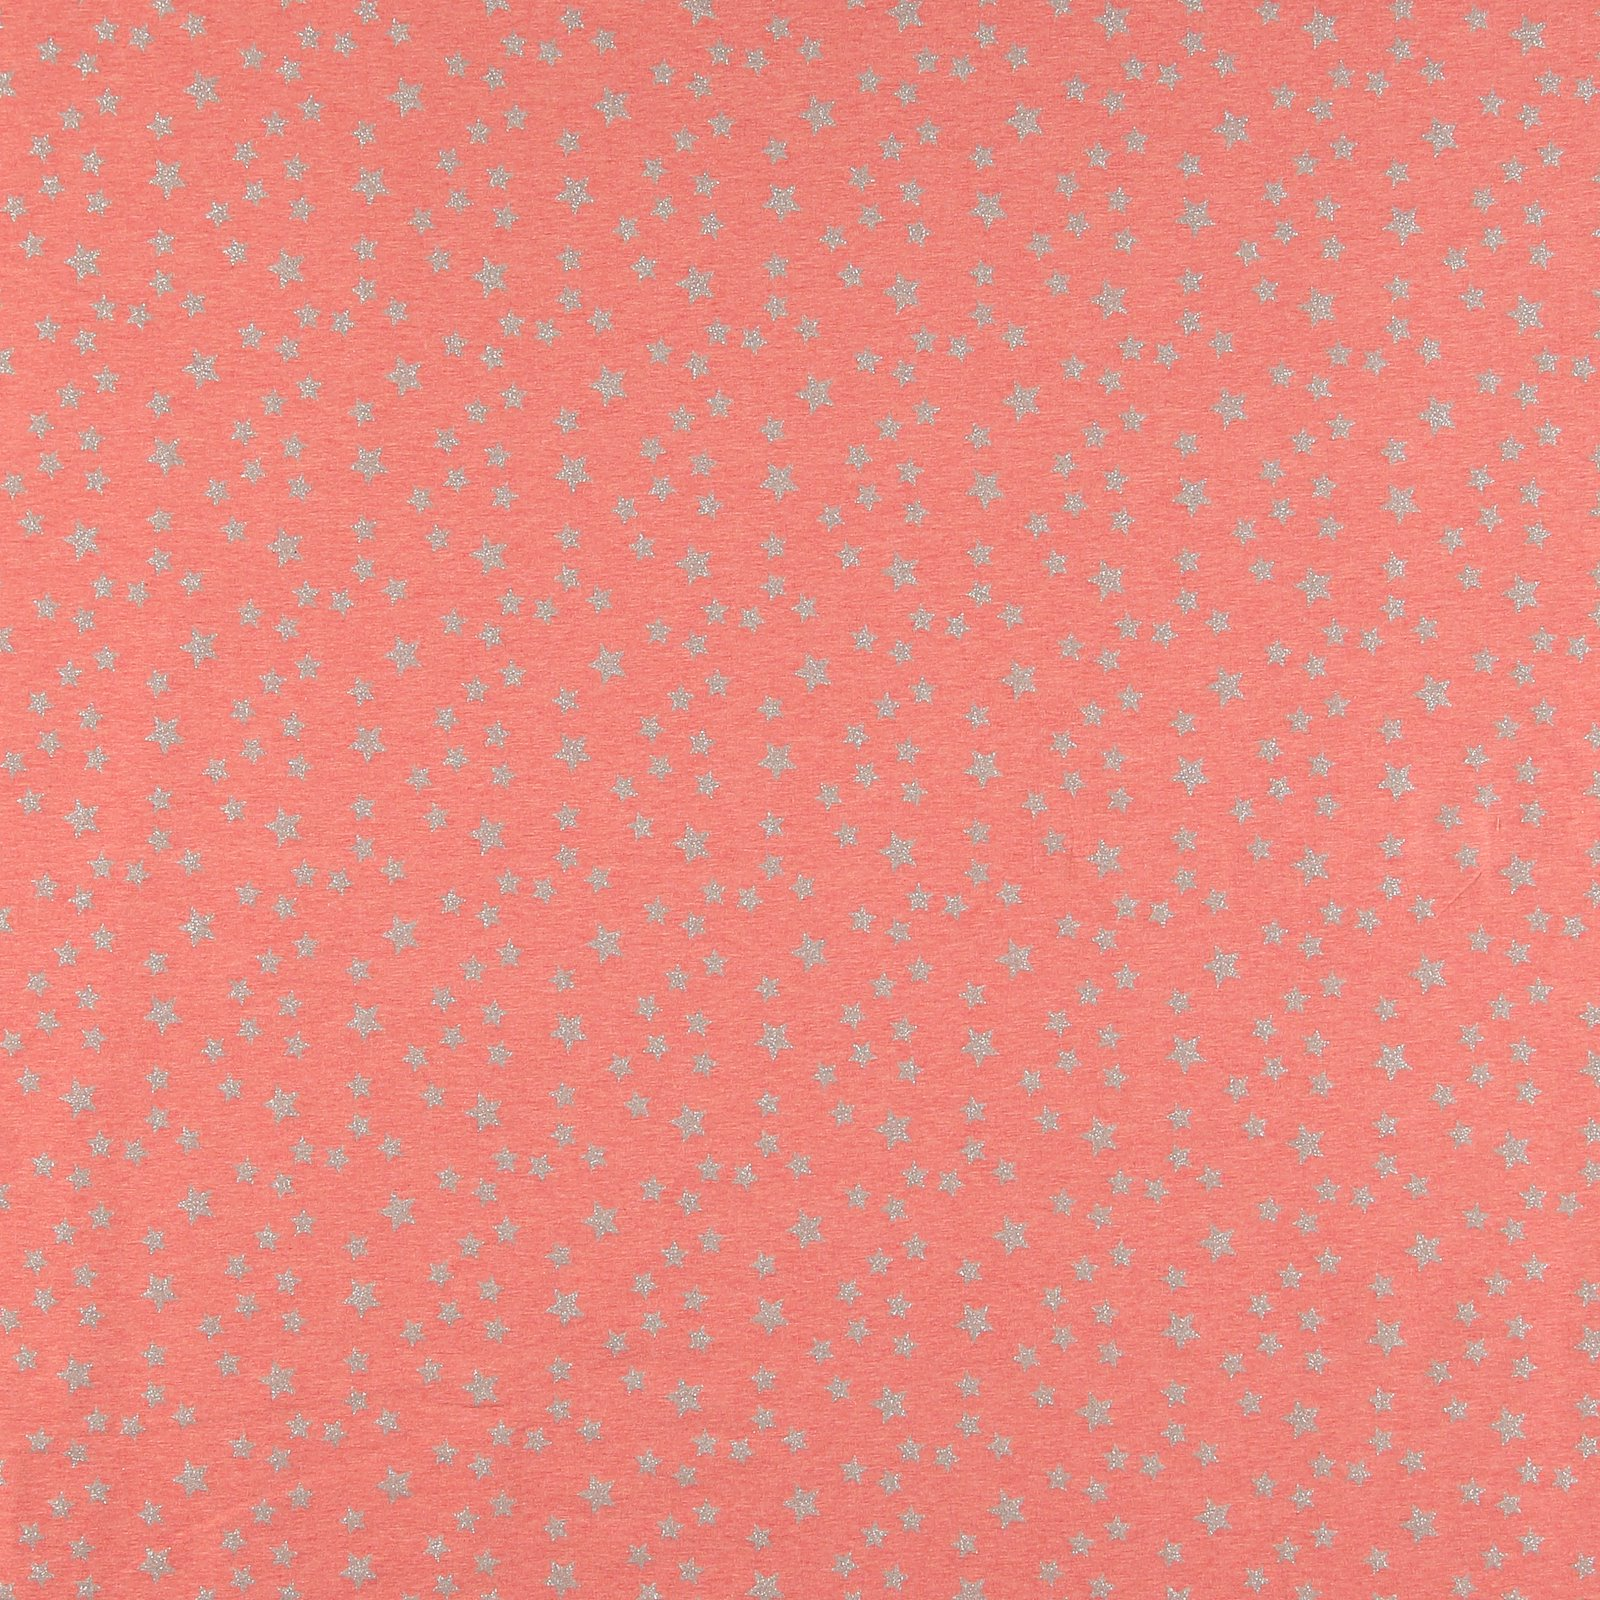 Stretch jersey coral w silver stars 271532_pack_sp